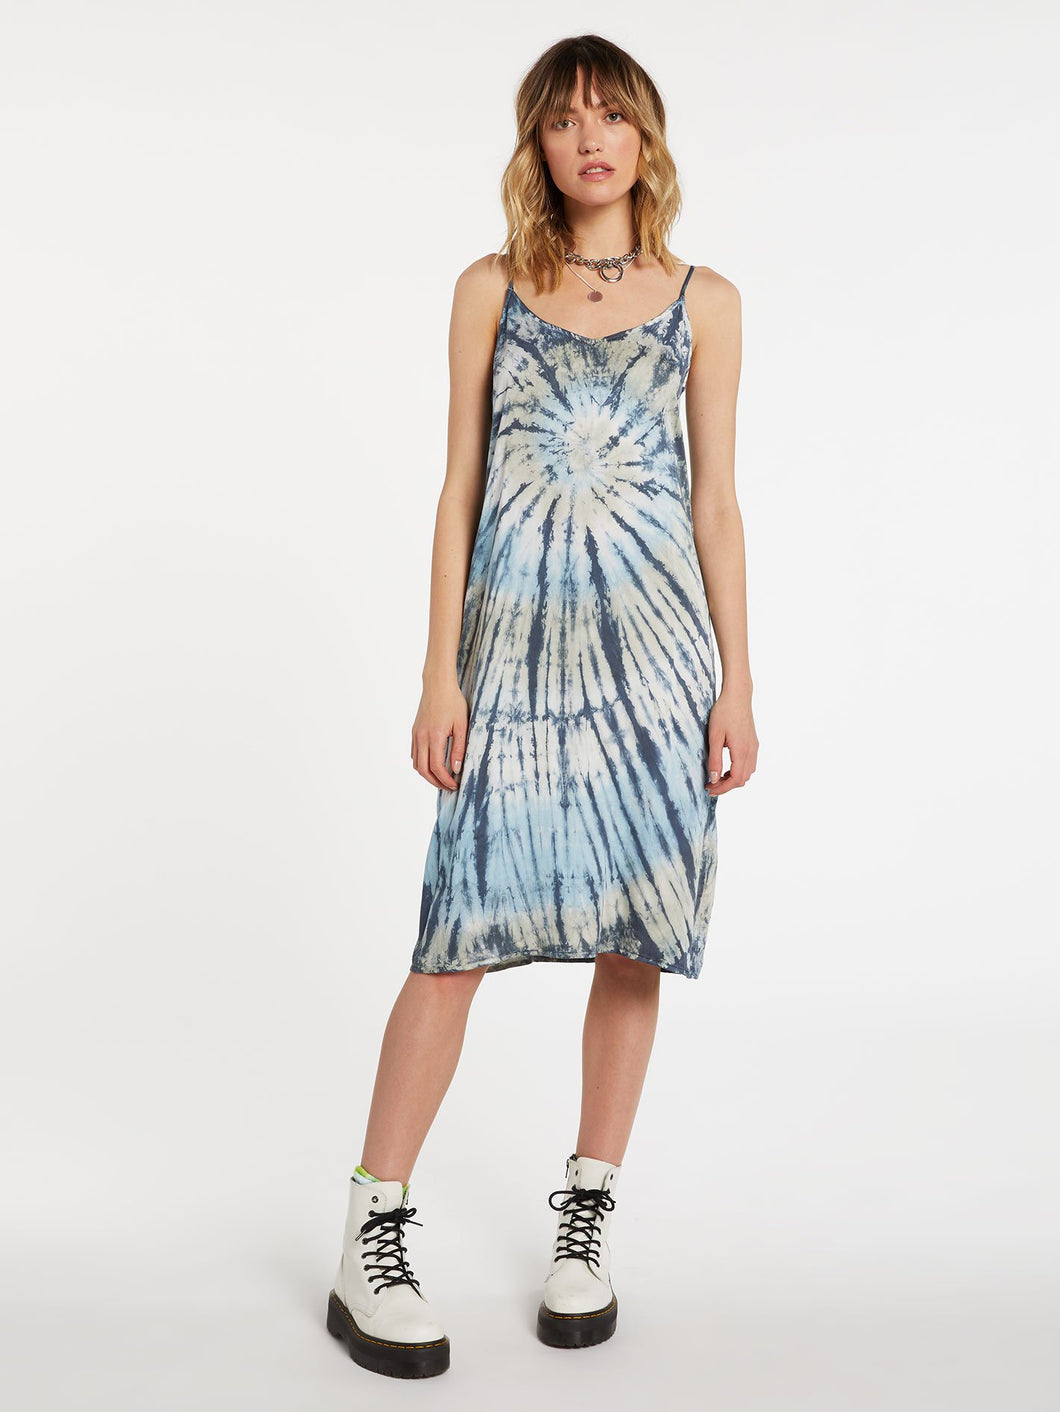 DYED DREAMS DRESS